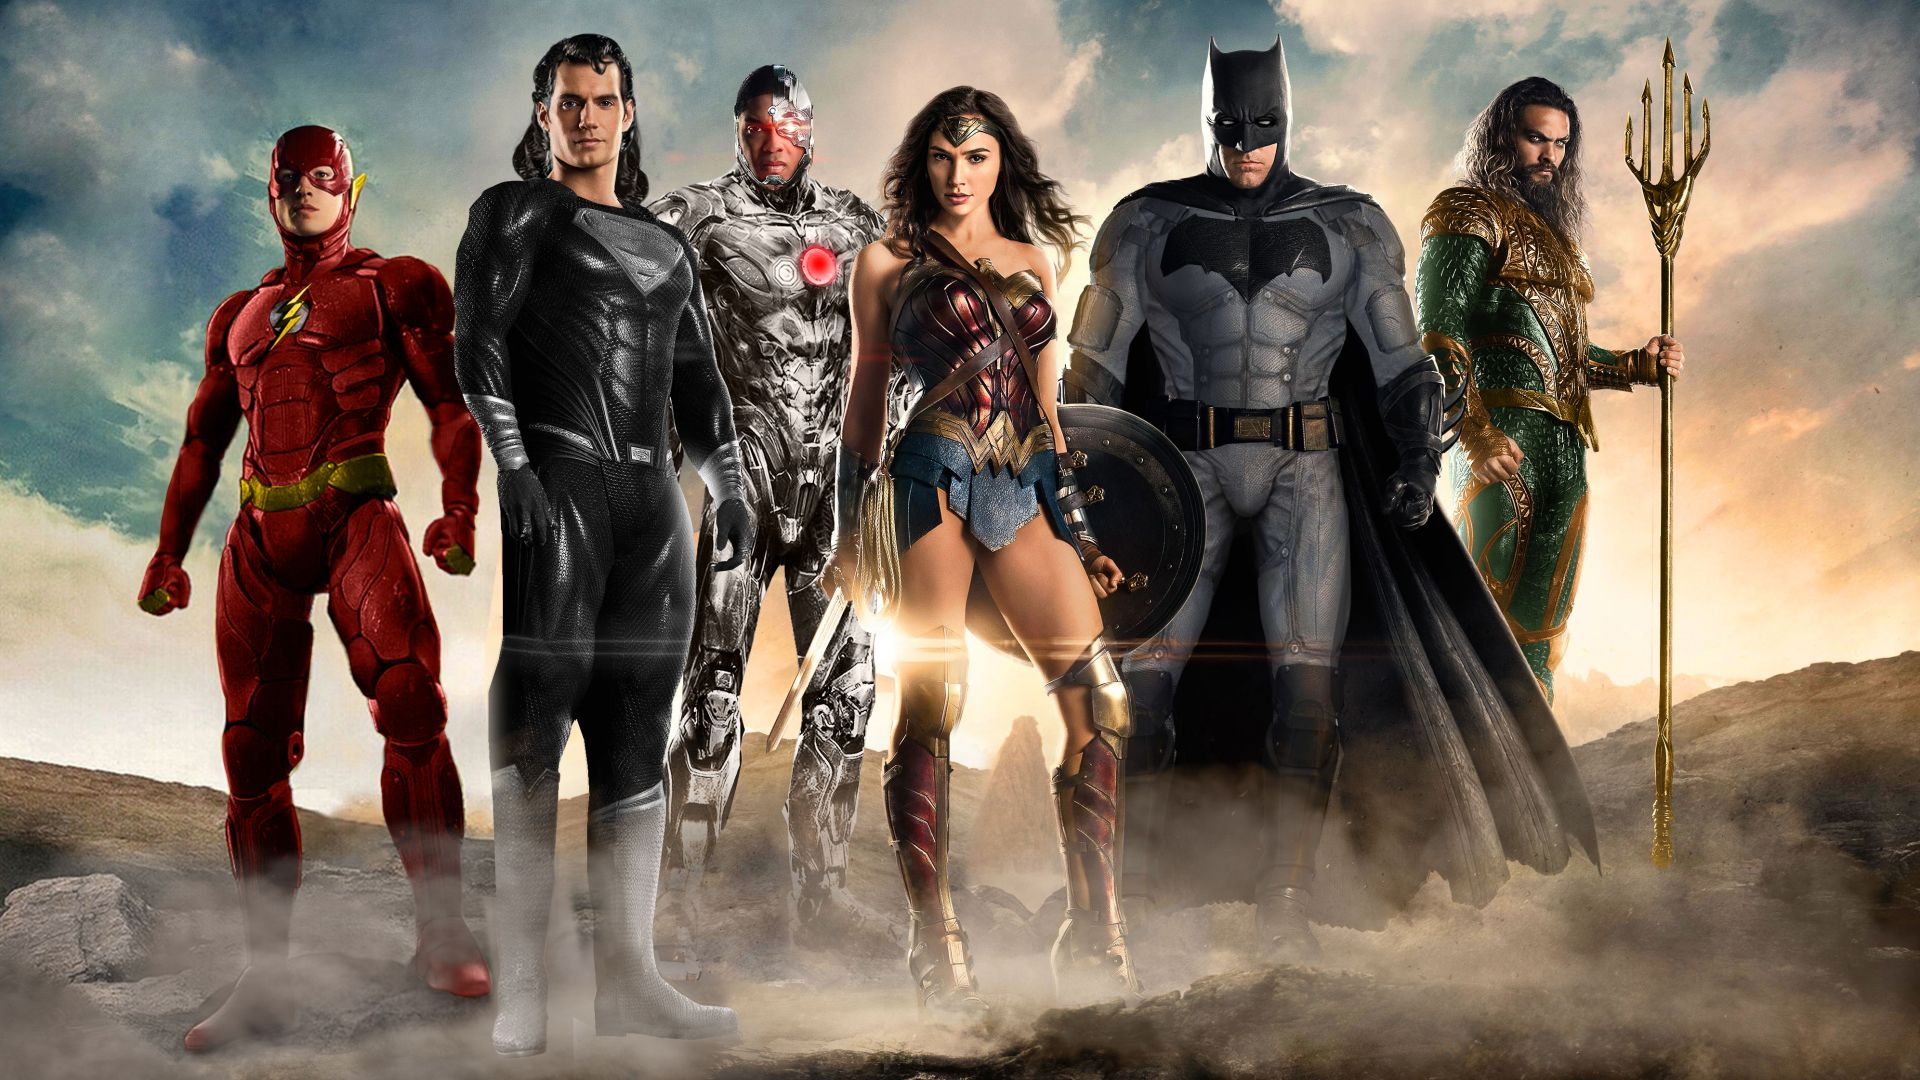 Justice League Movie Hd Movies 4k Wallpapers Images: Wallpaper Justice League, Superman, Batman, Wonder Woman